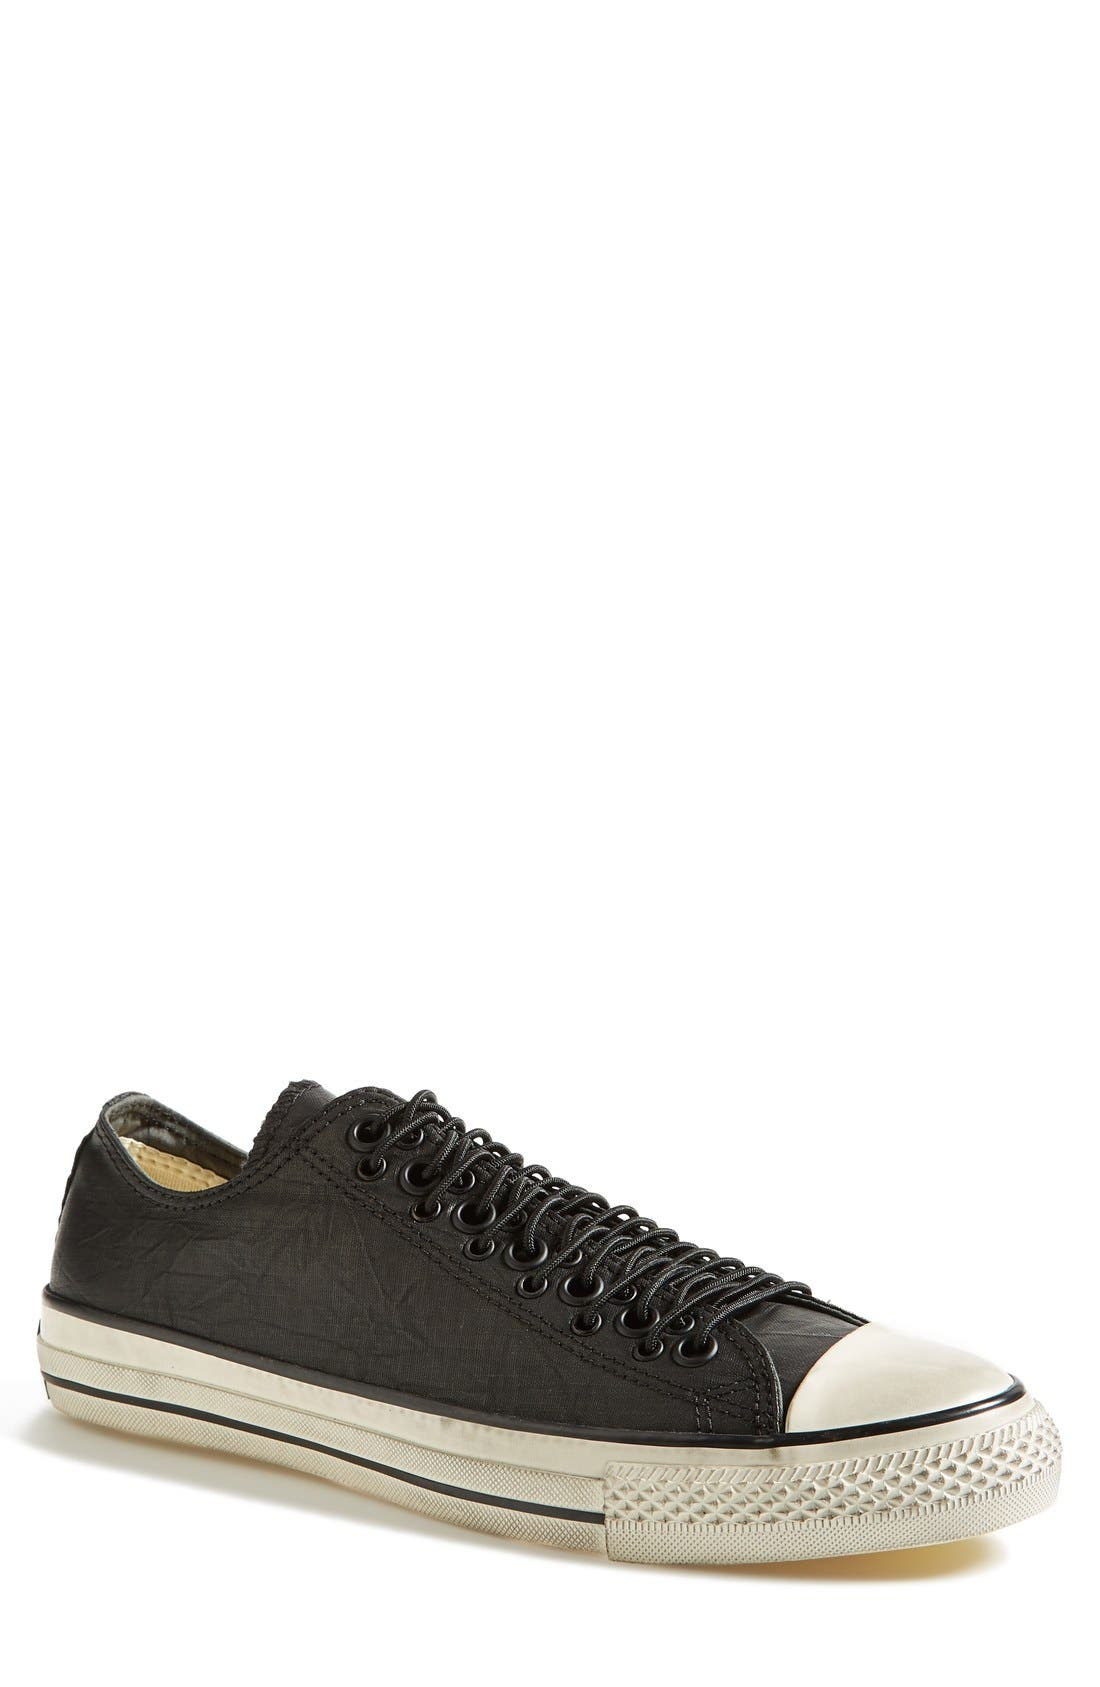 Main Image - Converse by John Varvatos Chuck Taylor® All Star® Low Sneaker (Men) (Online Only)